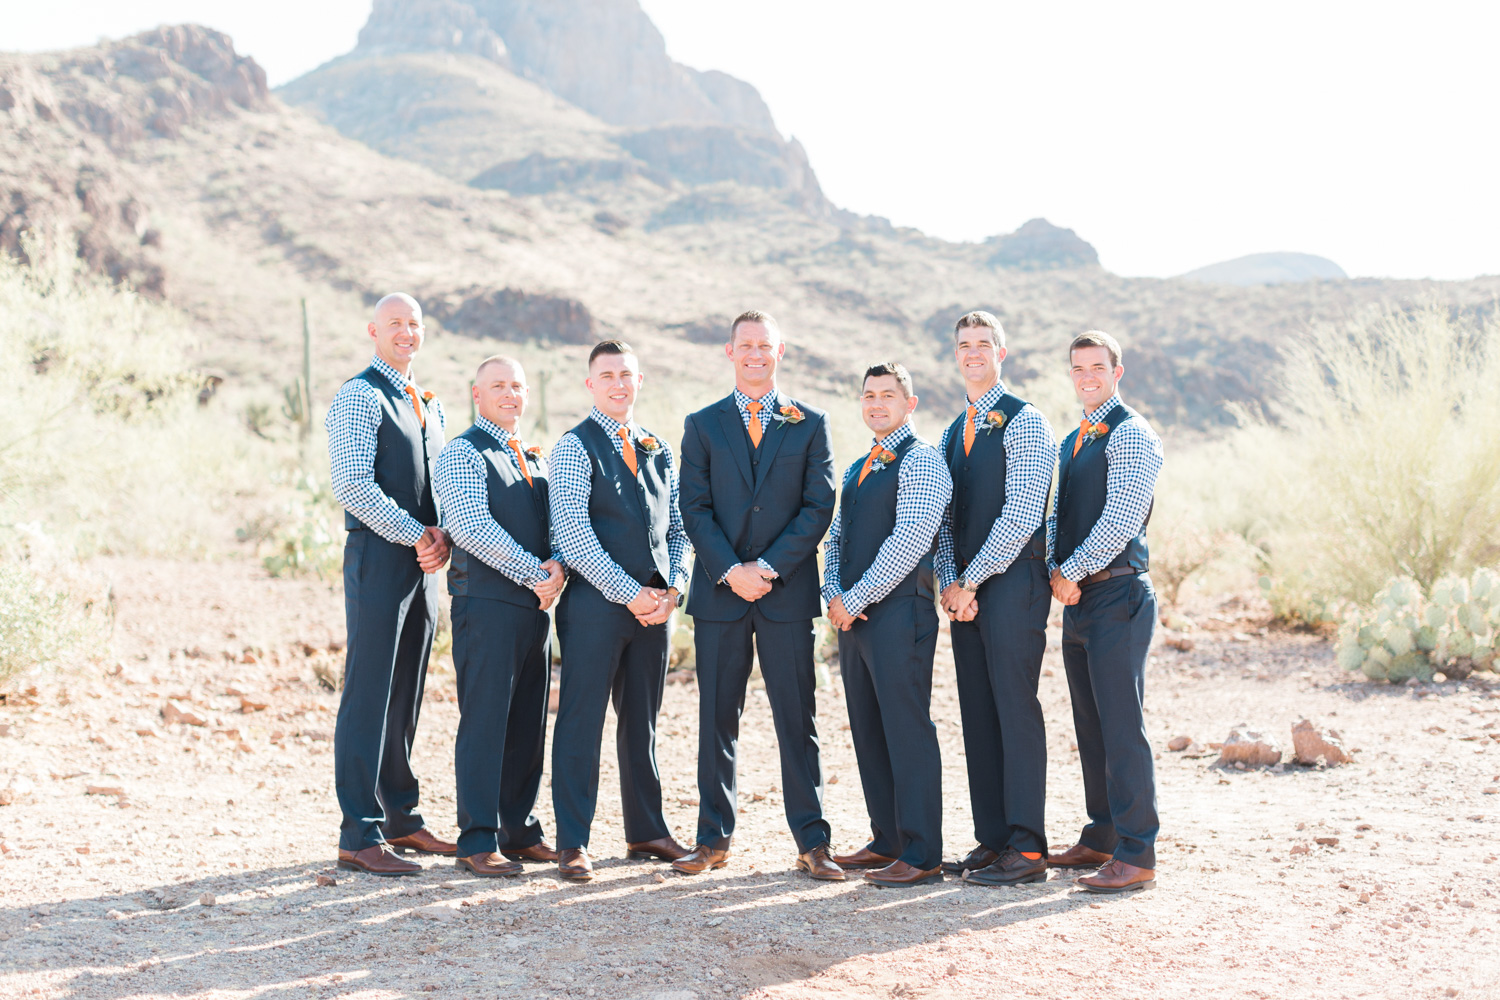 Handsome Groomsmen in navy gingham shirts with orange ties and navy suits. Beautiful mountain views in the background!